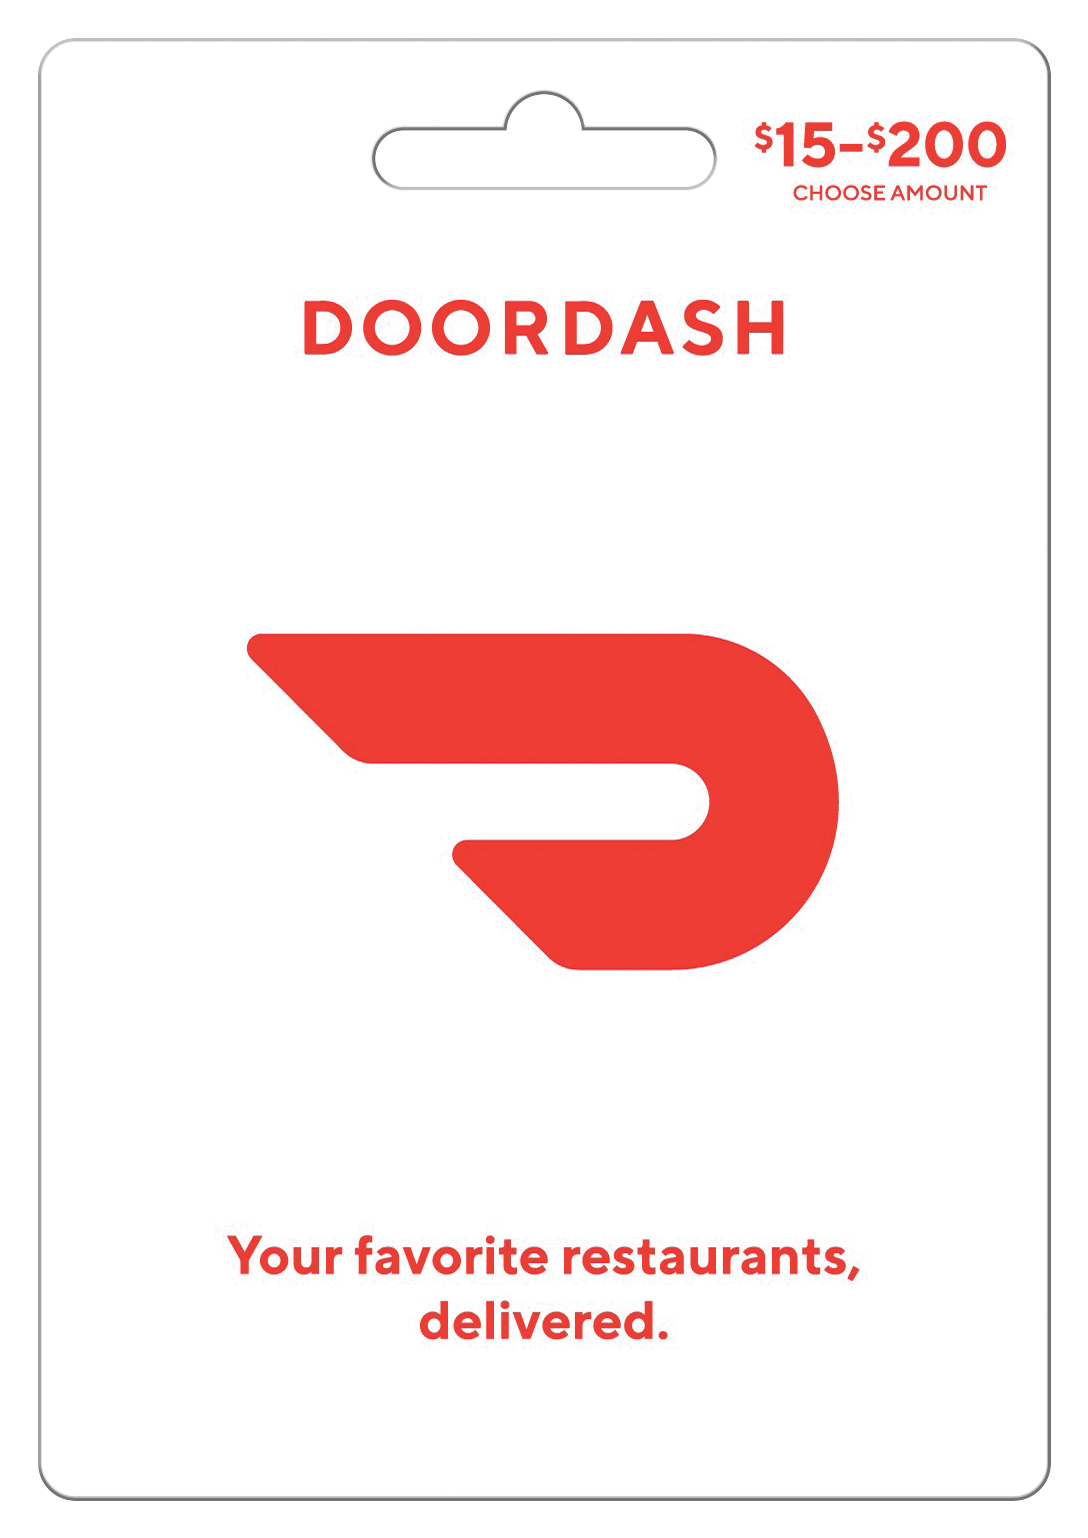 DoorDash_M6NS_VGC_15_200_020720.png